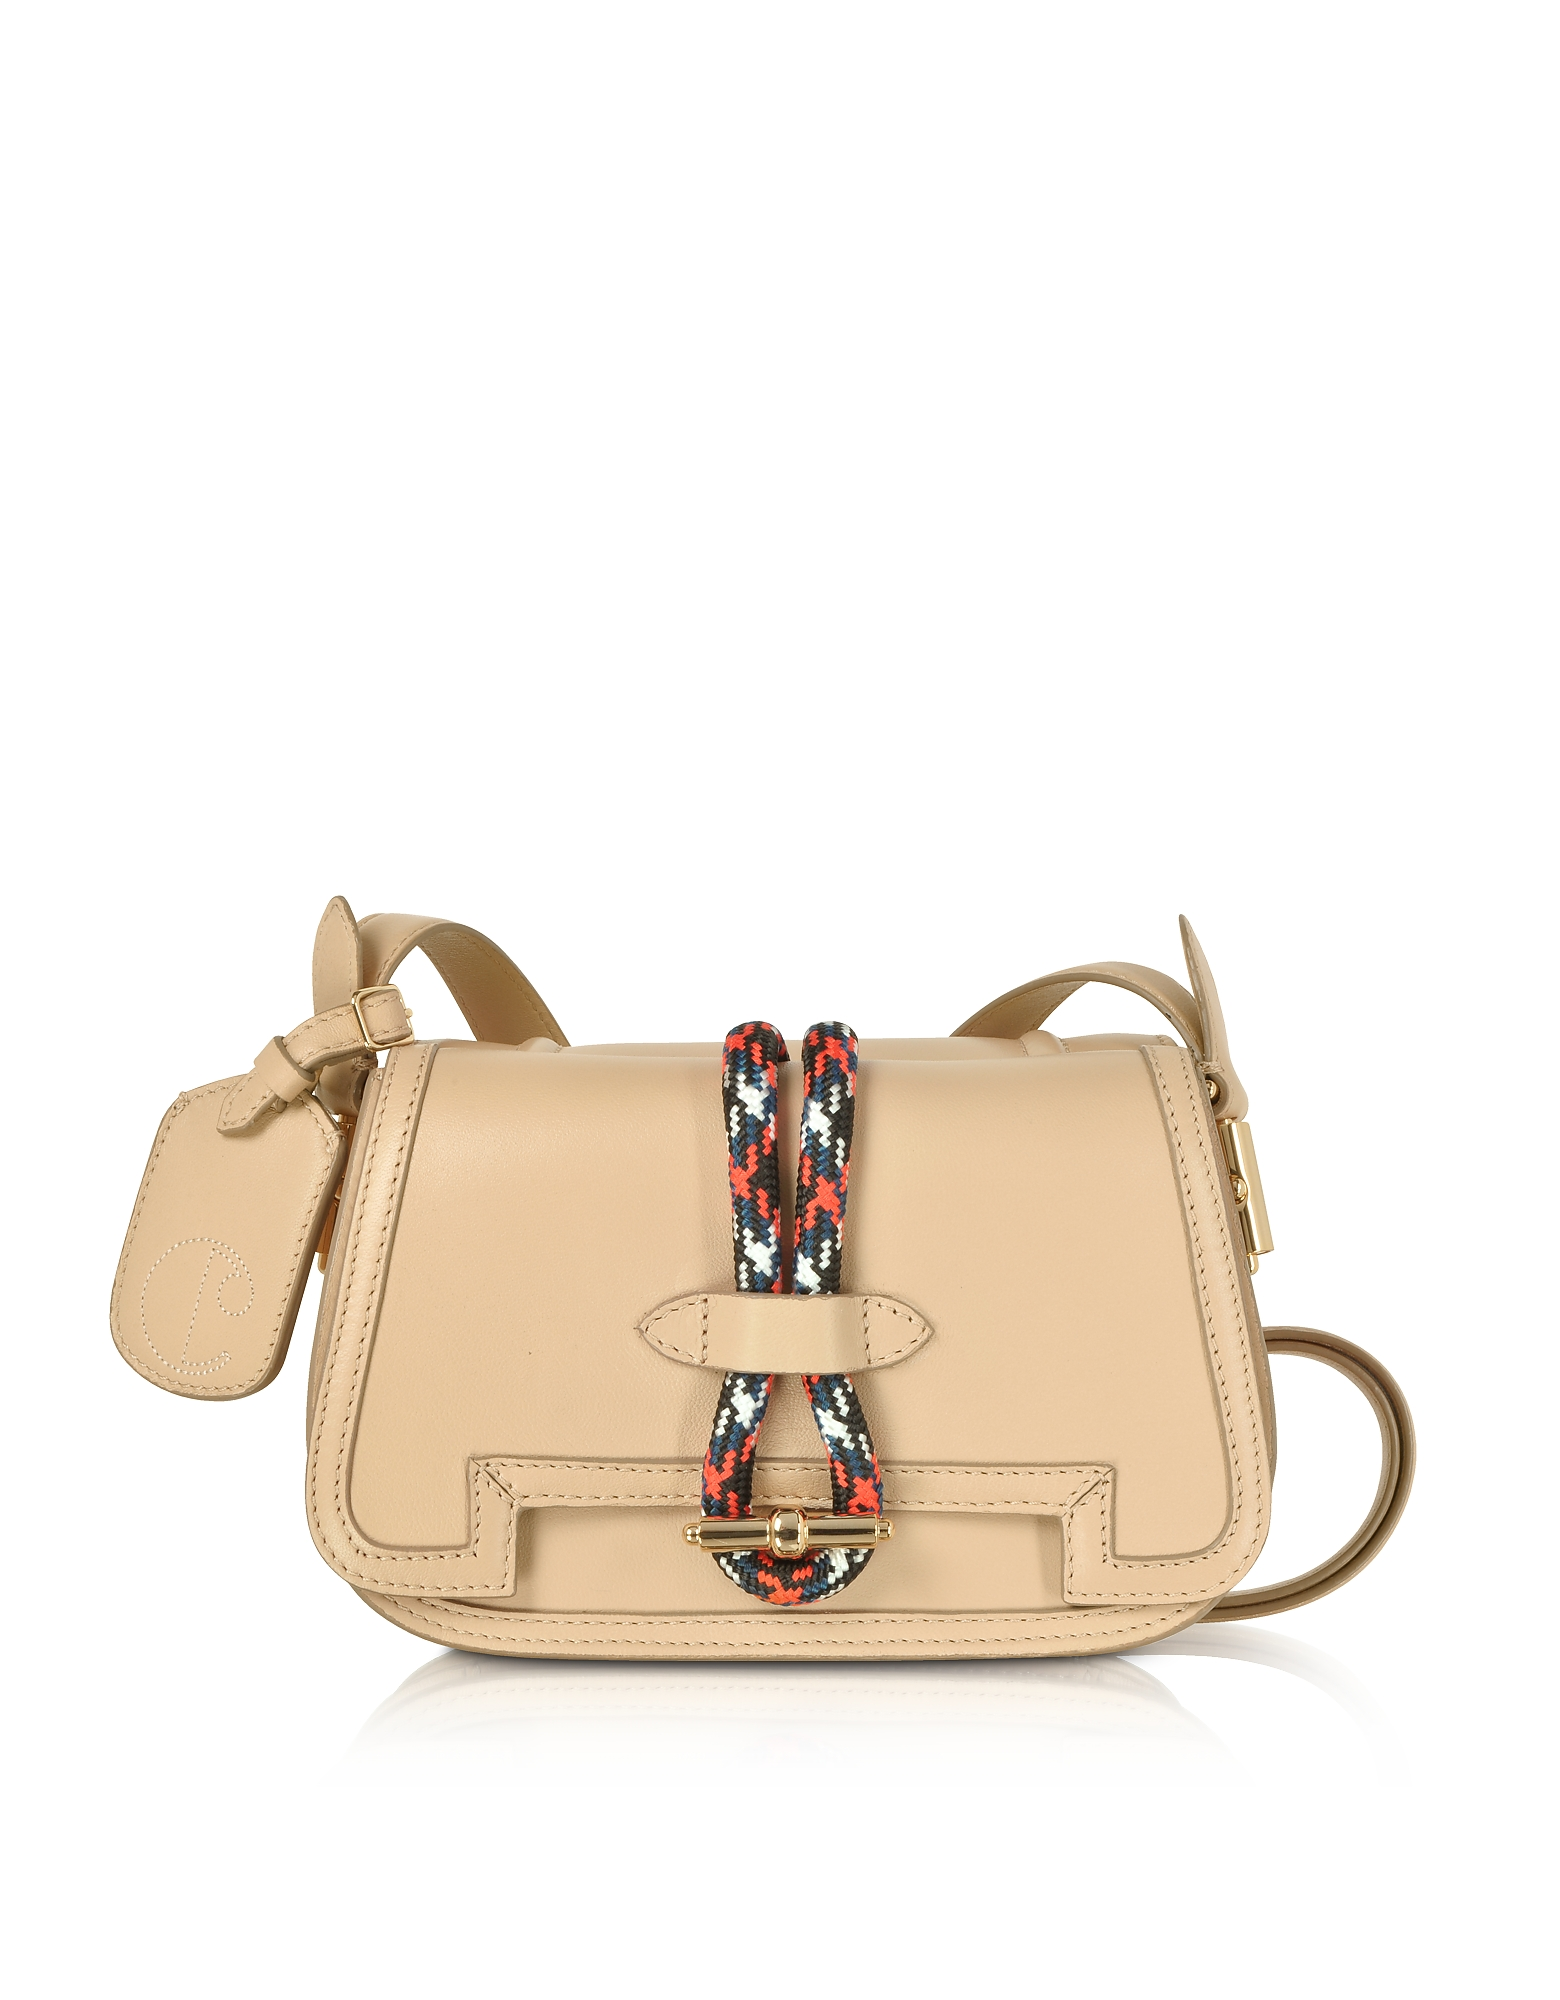 Image of Carven Designer Handbags, Smooth Leather Flap Top Twin Bag